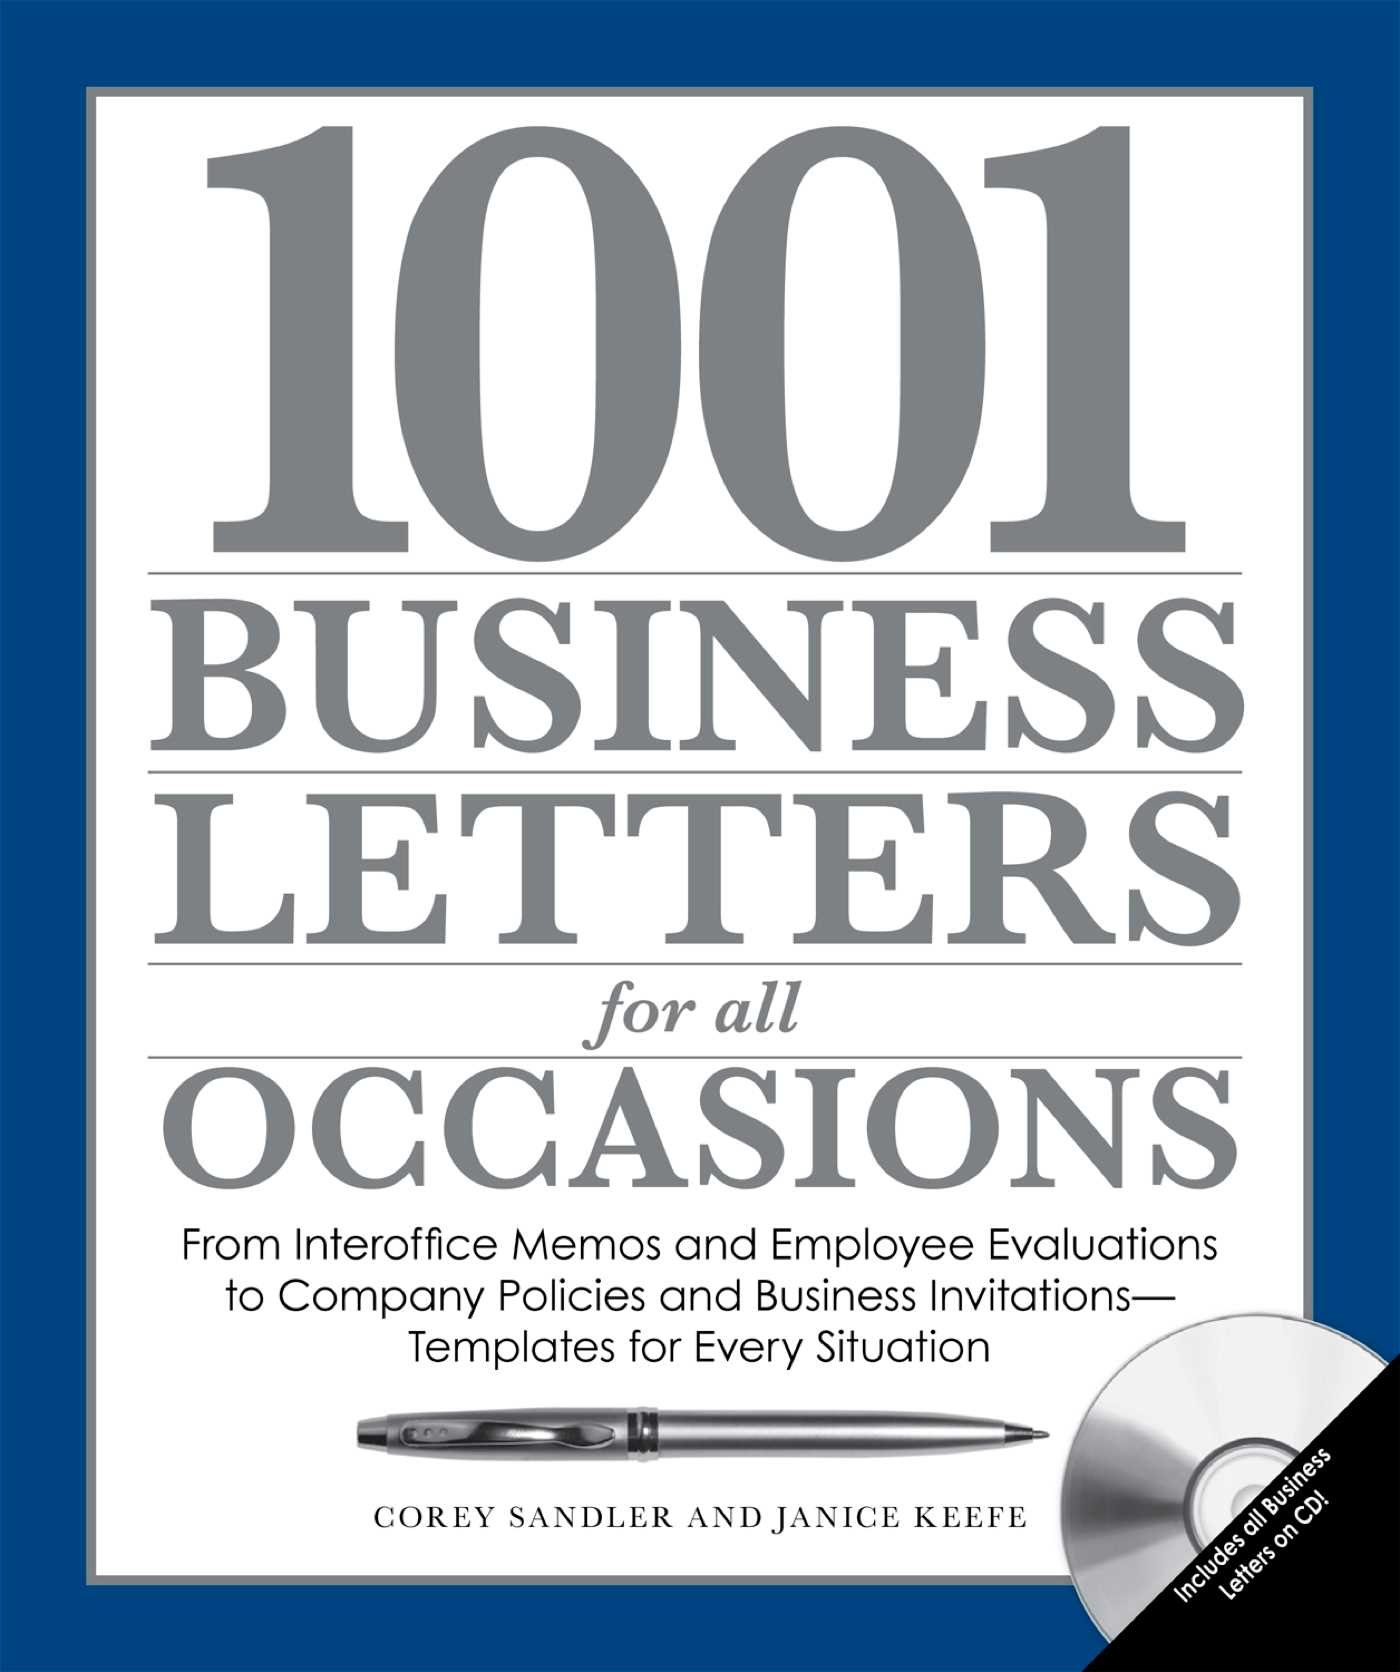 1001 Business Letters For All Occasions Ebook By Corey Sandler